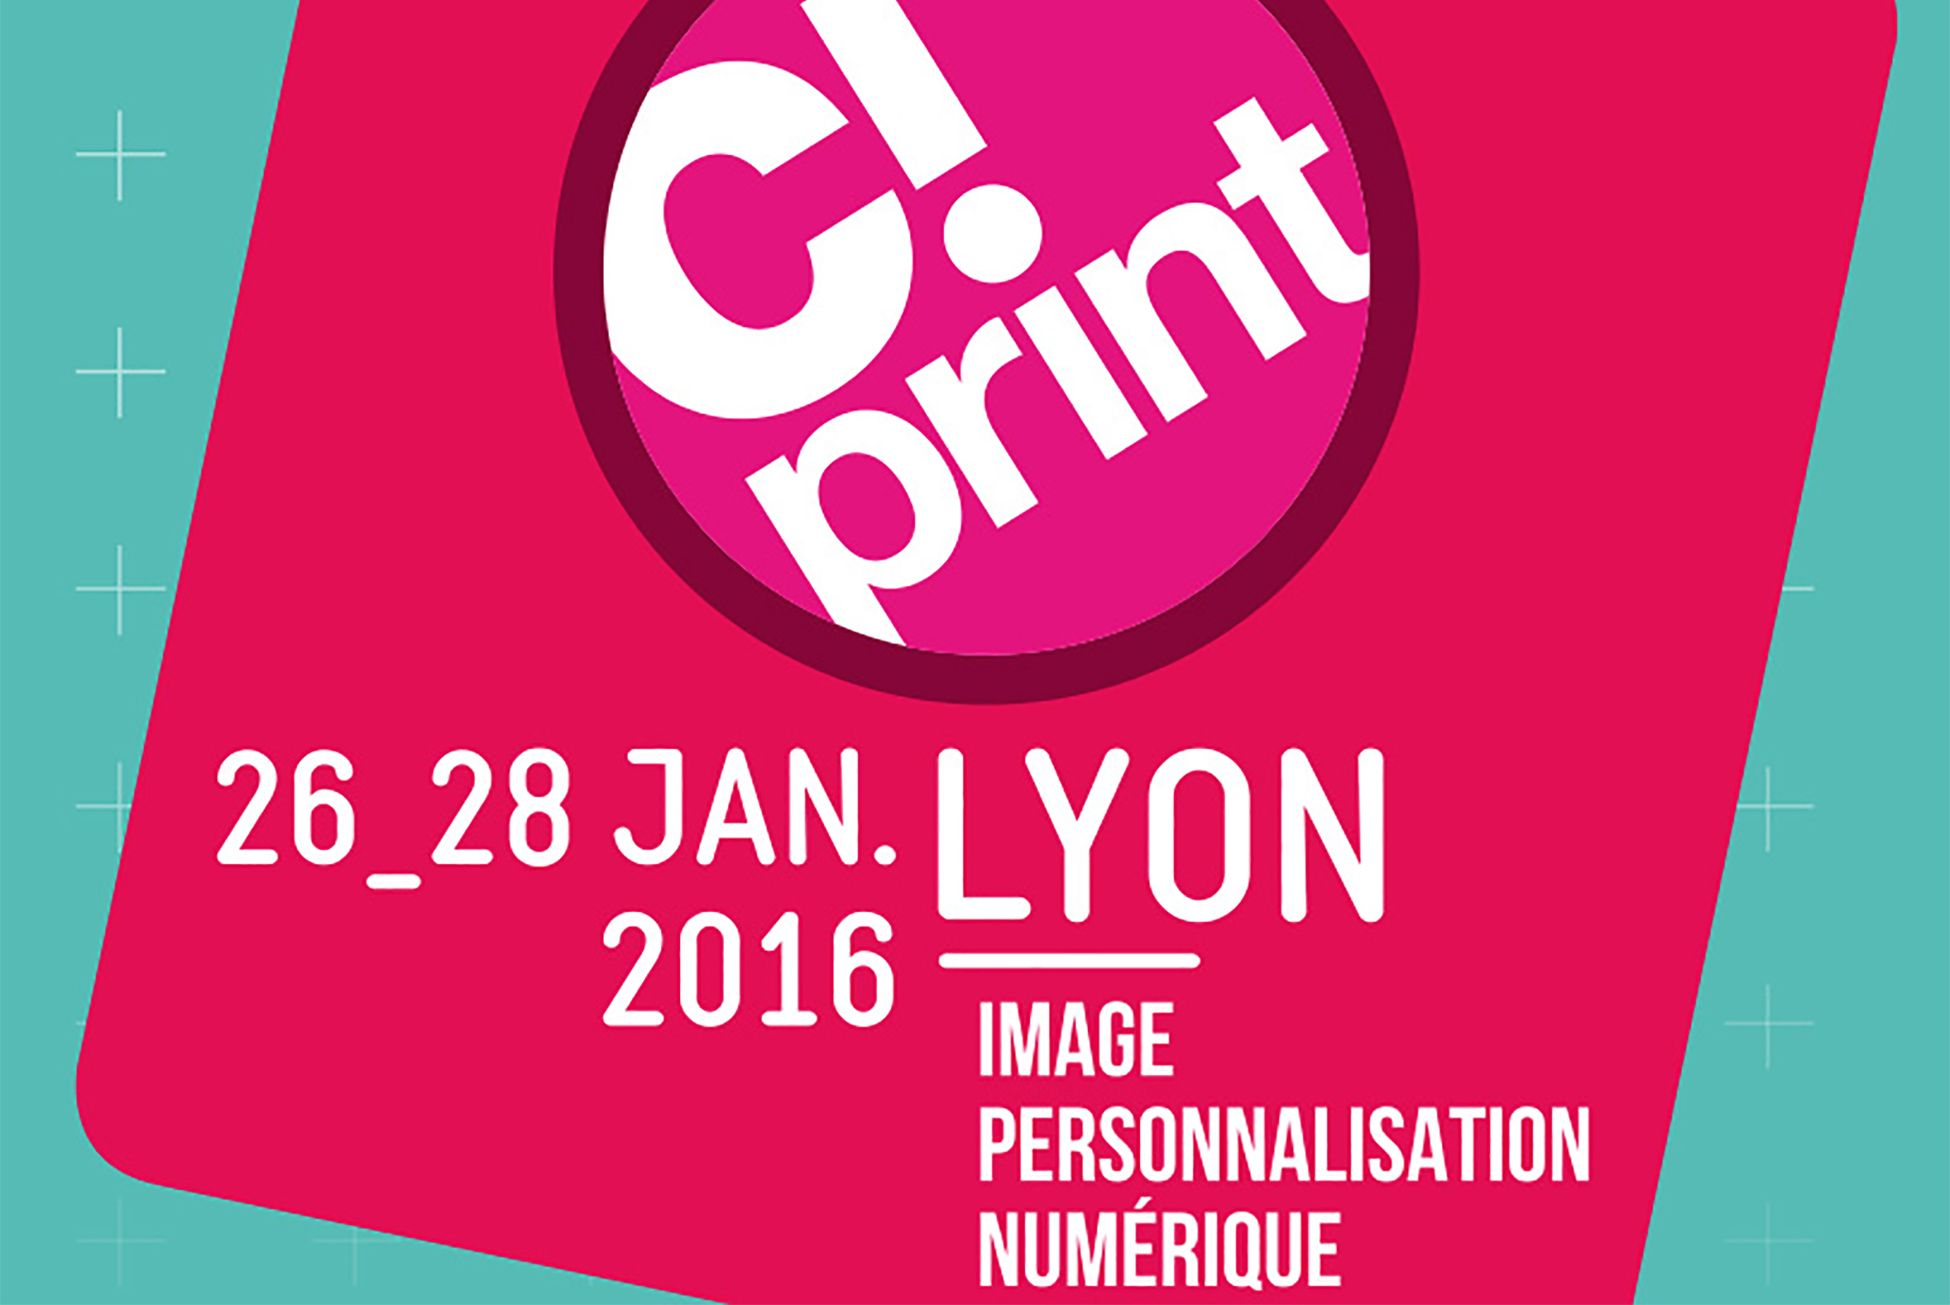 salon communication cprint lyon